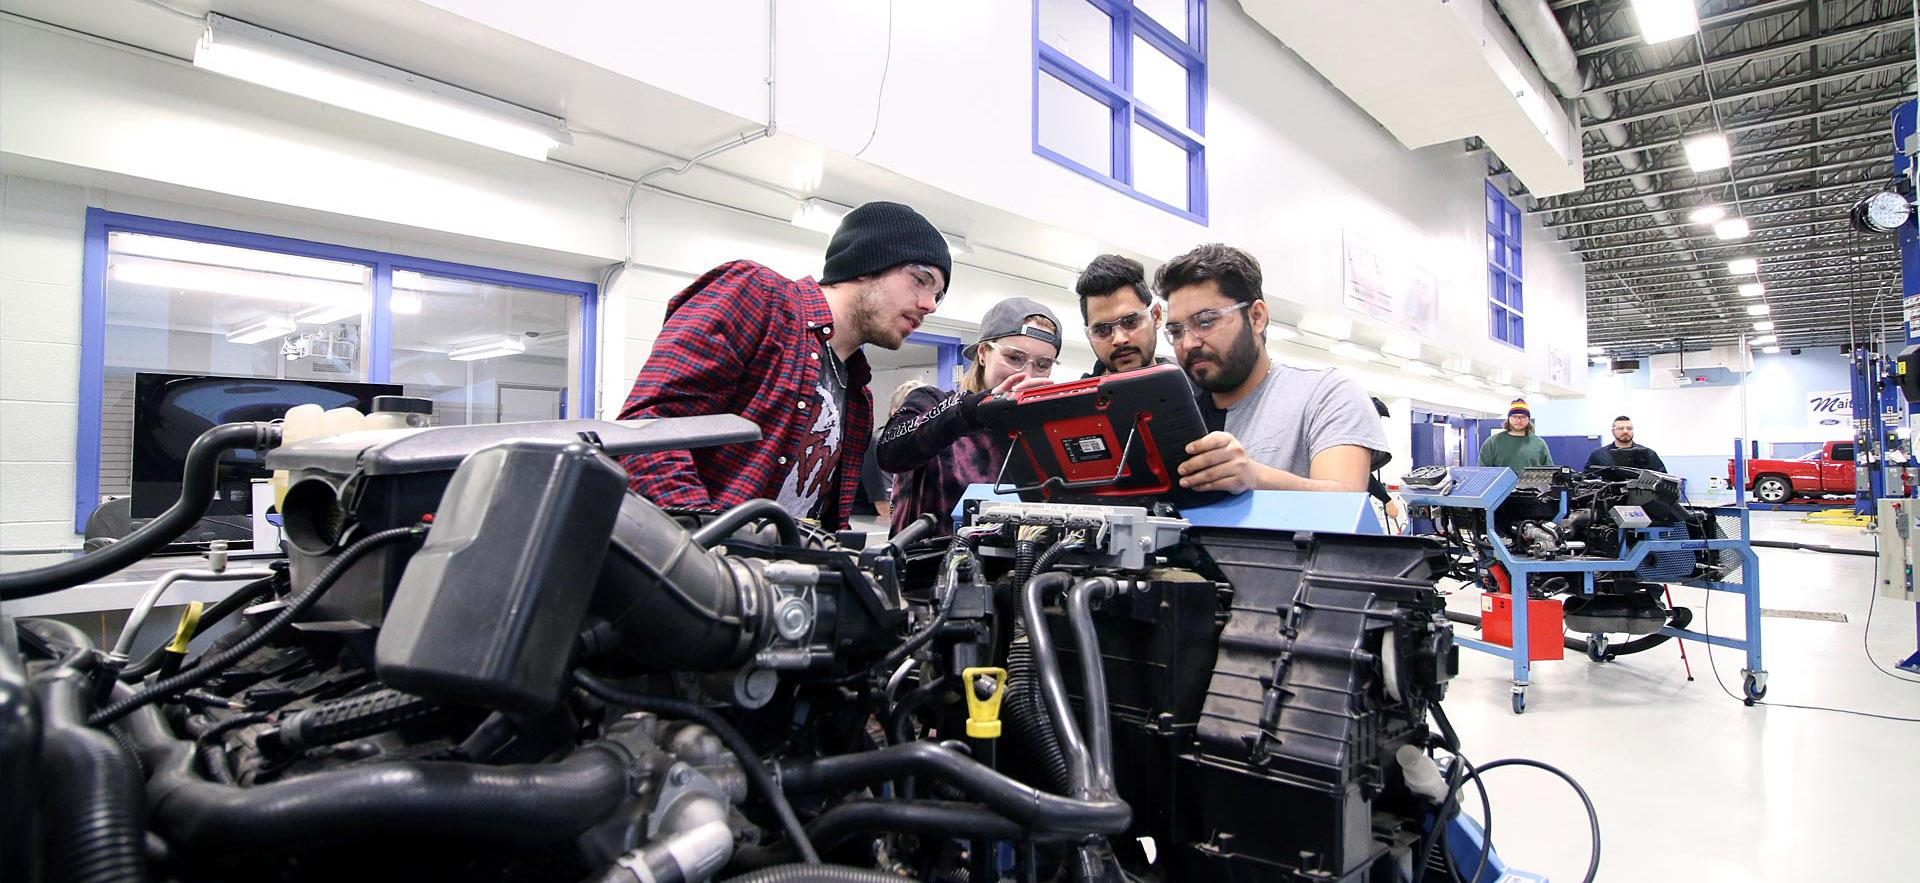 A group of male Motive Power Technician - Advanced Repair students run diagnostics on a car engine.